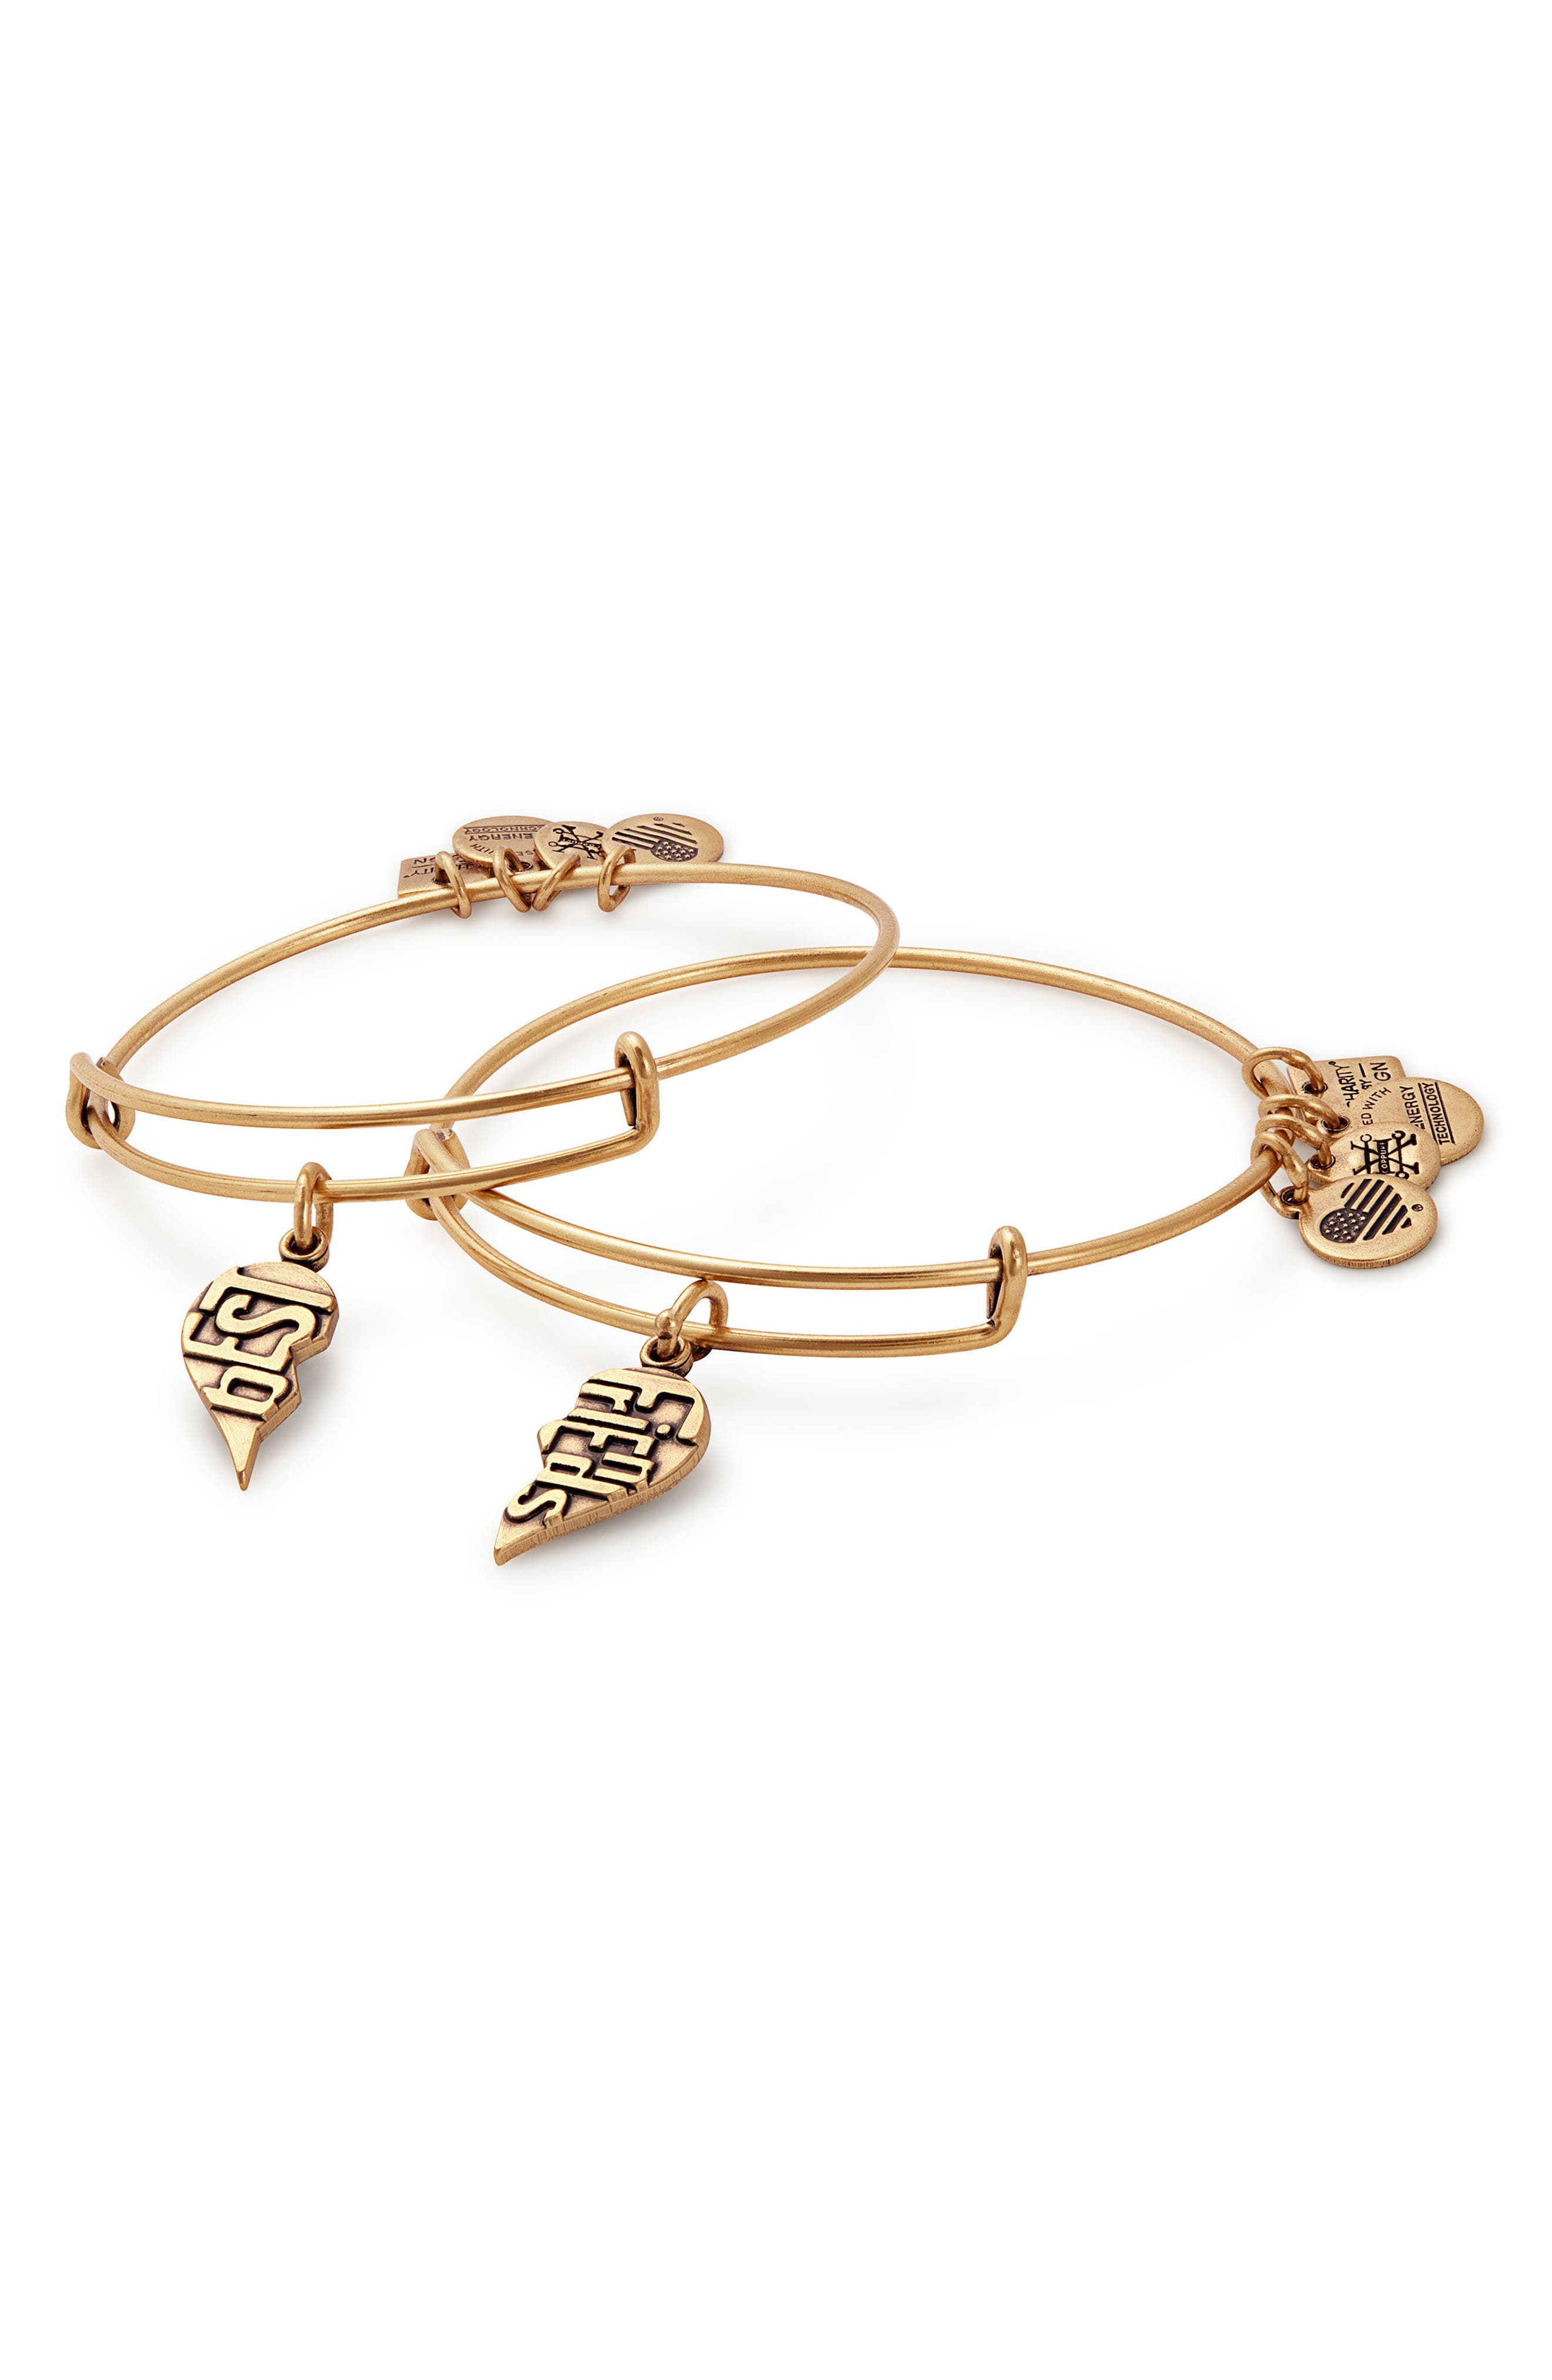 Alex And Ani  Charity by Design - Best Friends Set of 2 Charm Adjustable Bangles